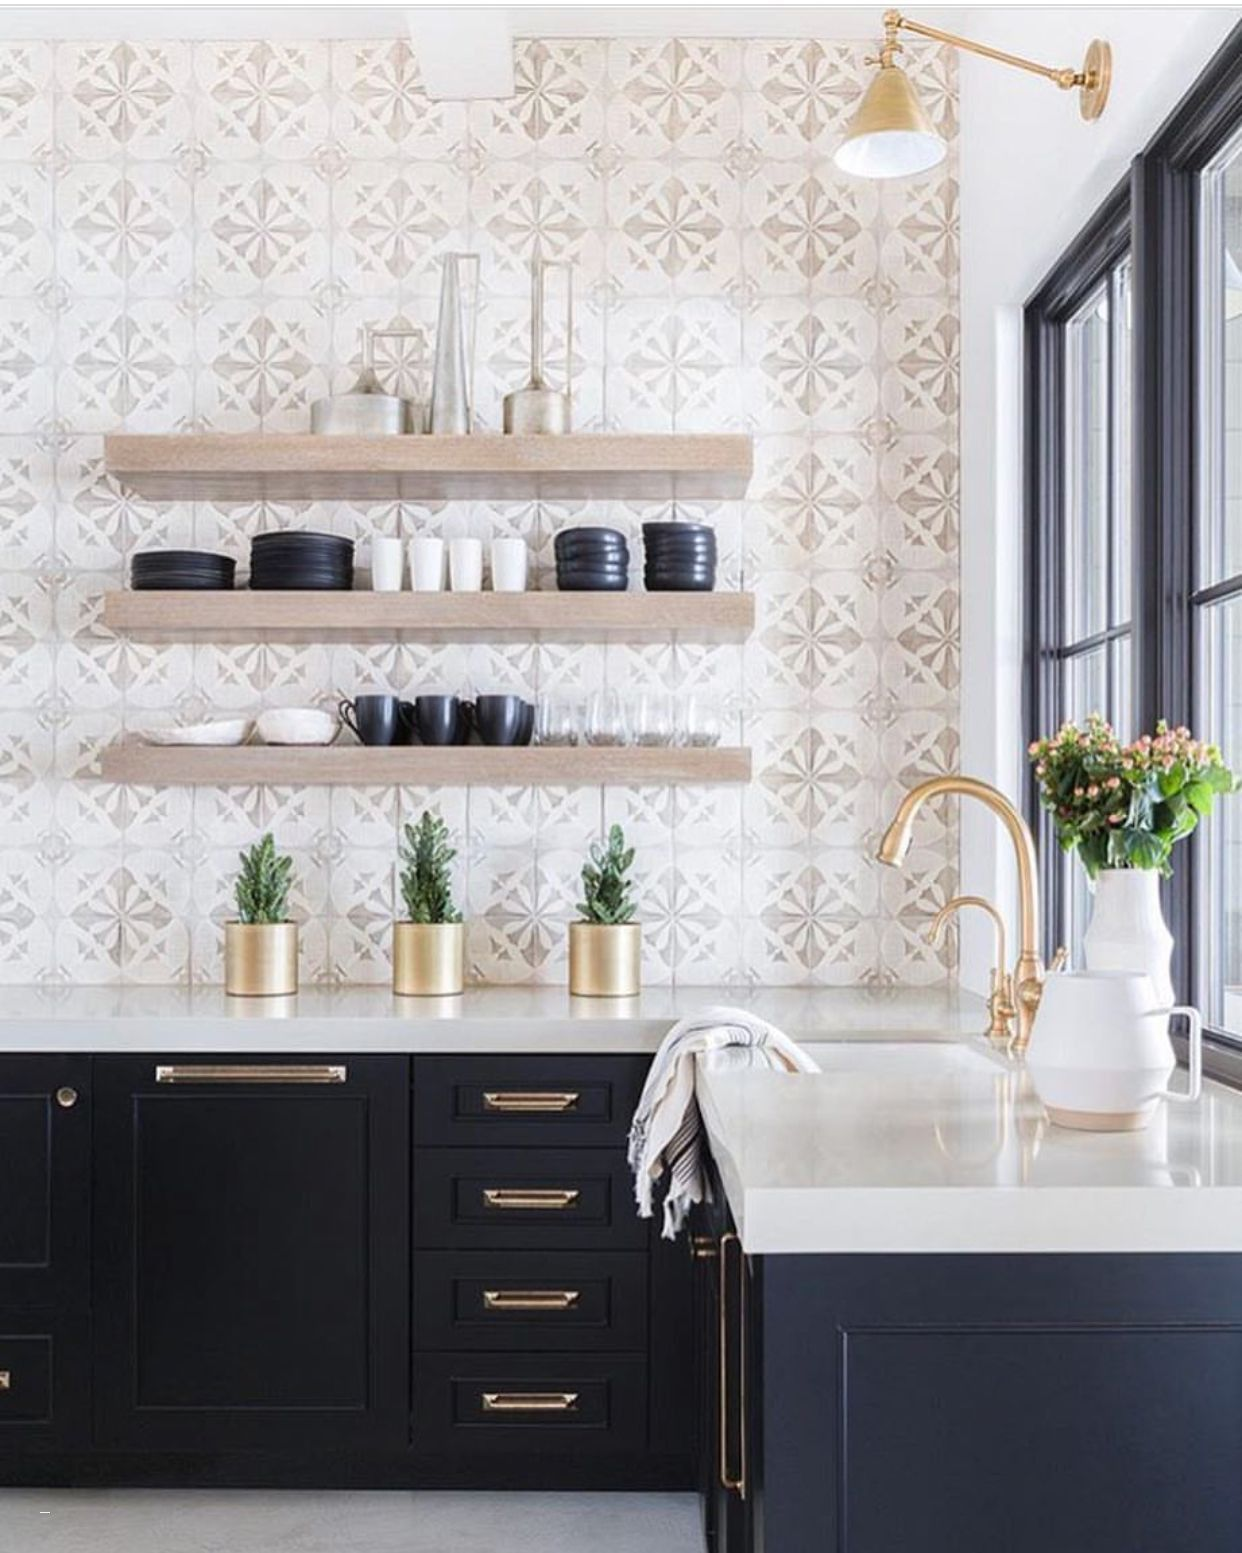 kitchen with shelves instead of cabinets elegant on kitchen shelves instead of cabinets id=35880